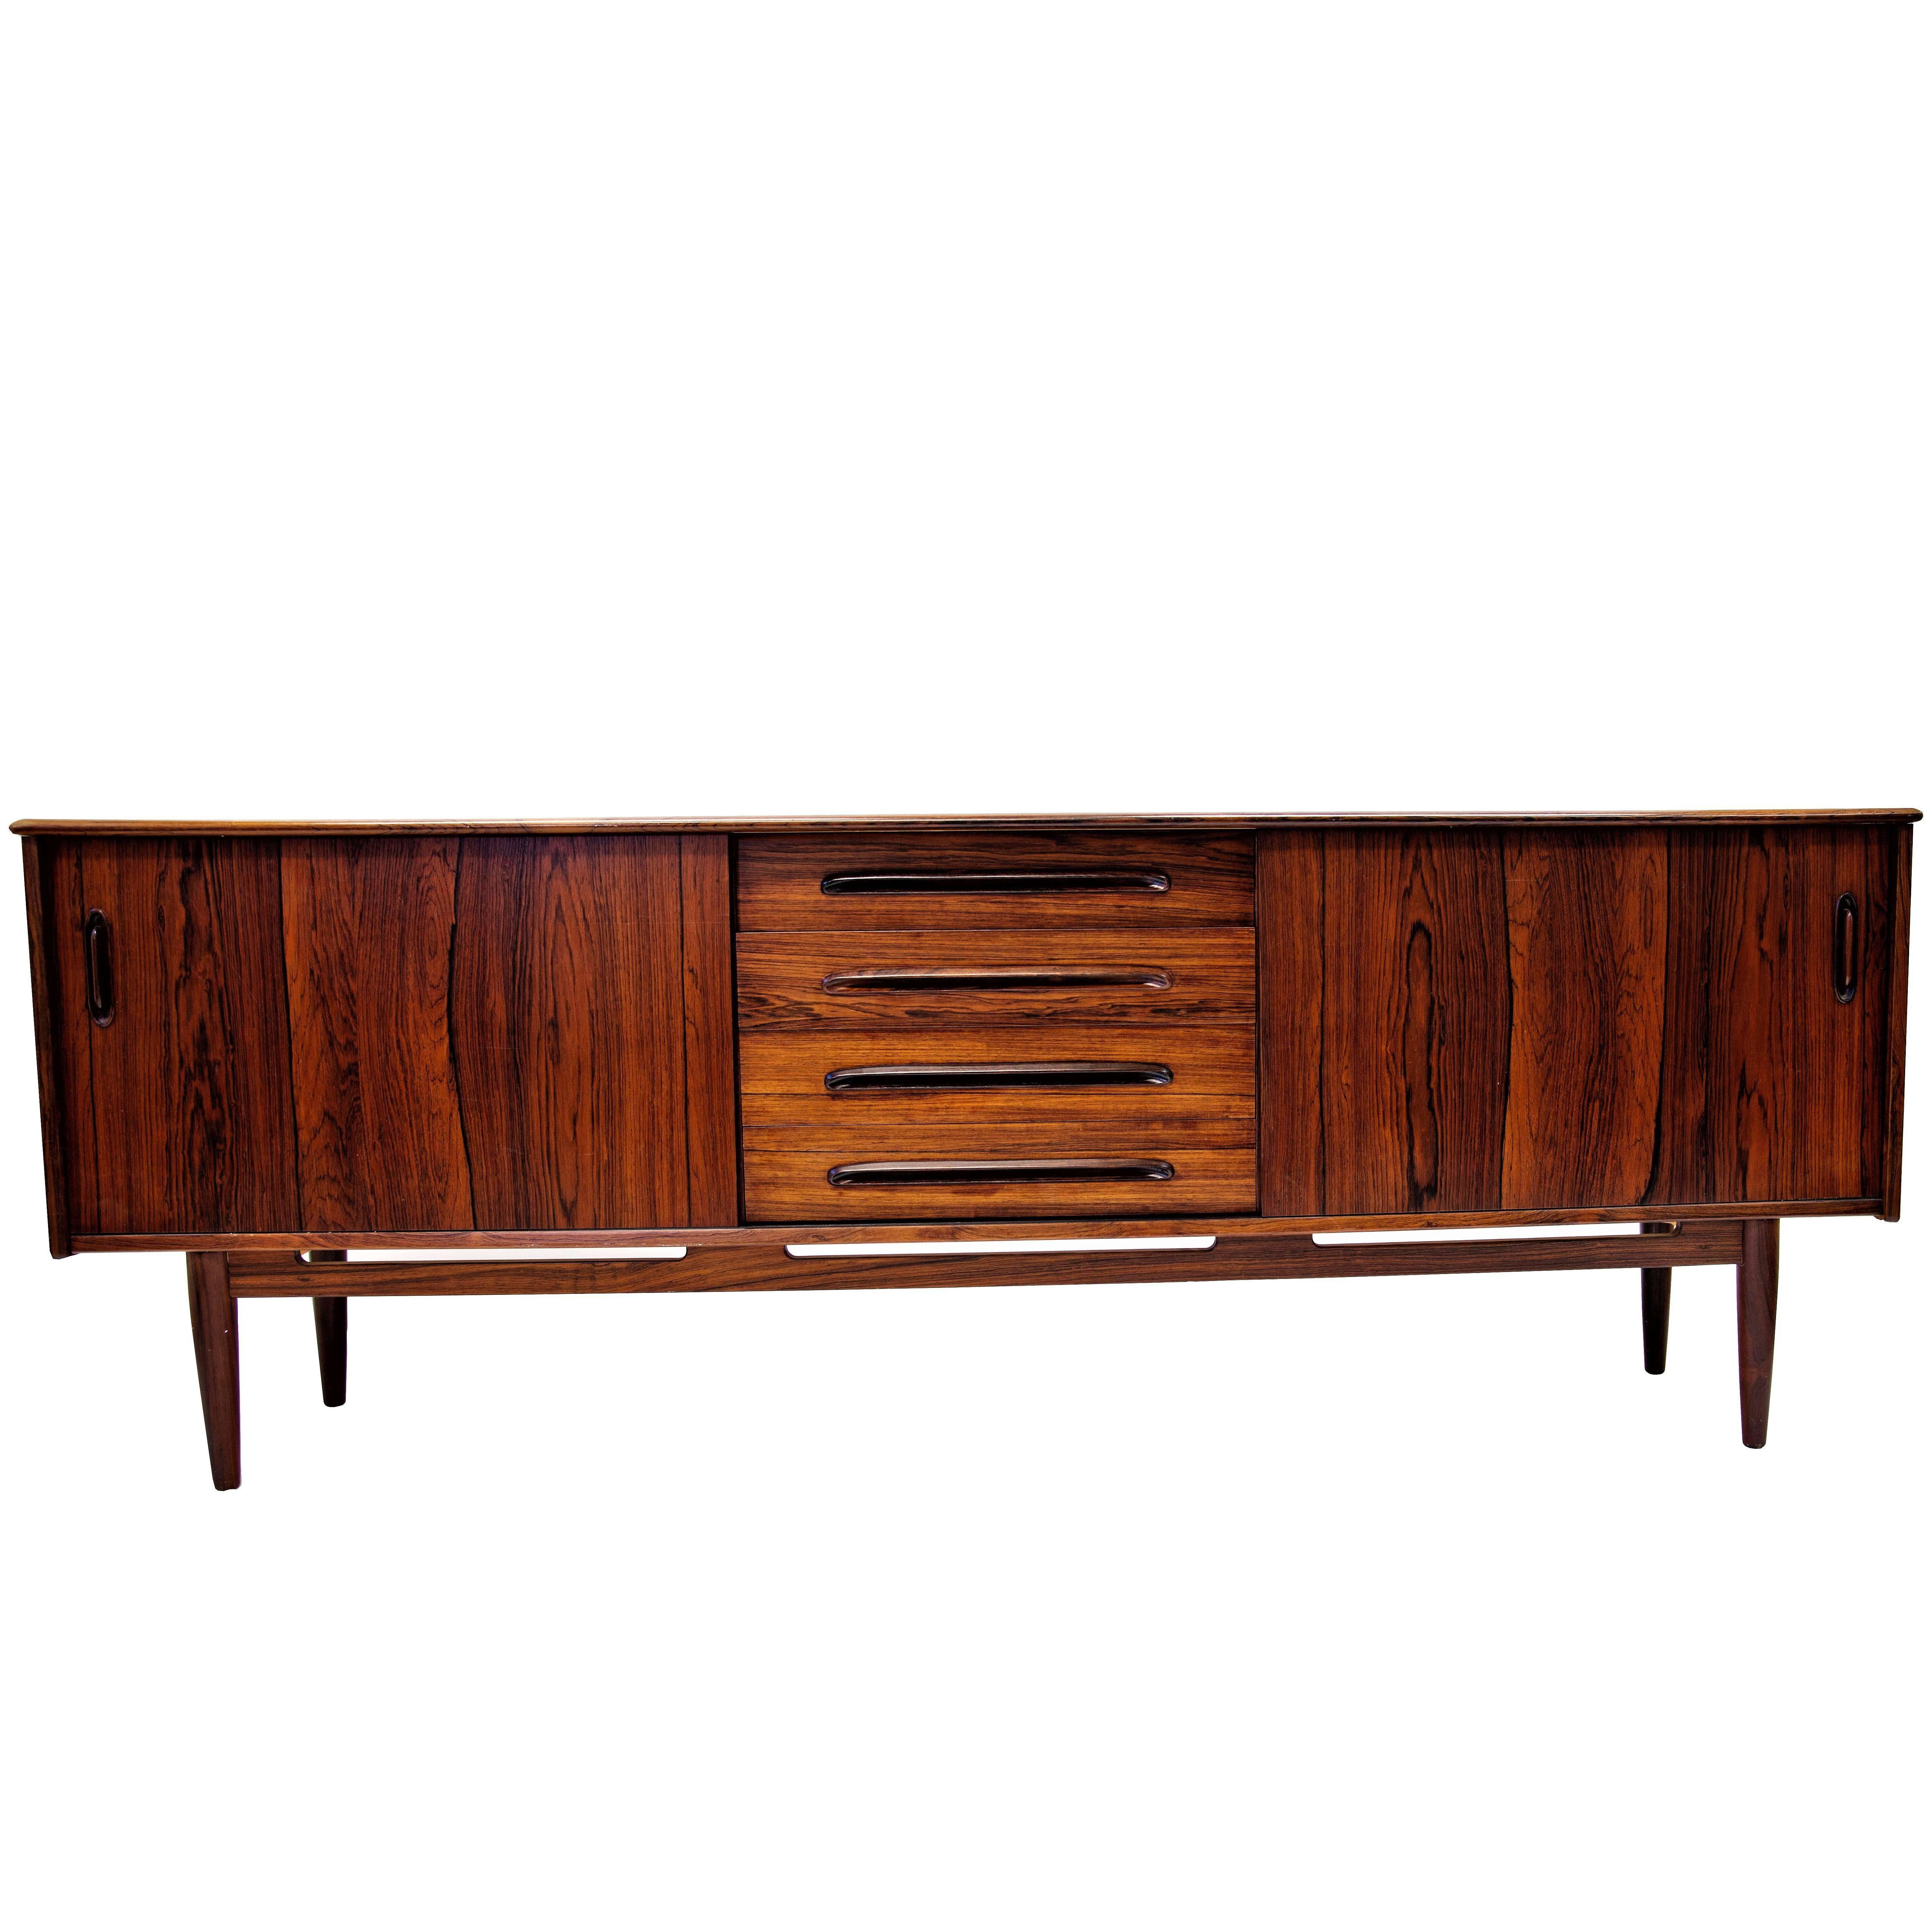 Pleasurable Loto Foot 7 Tags : 7 Foot Sideboard Buffet Tables And Pertaining To 7 Foot Sideboards (View 16 of 20)